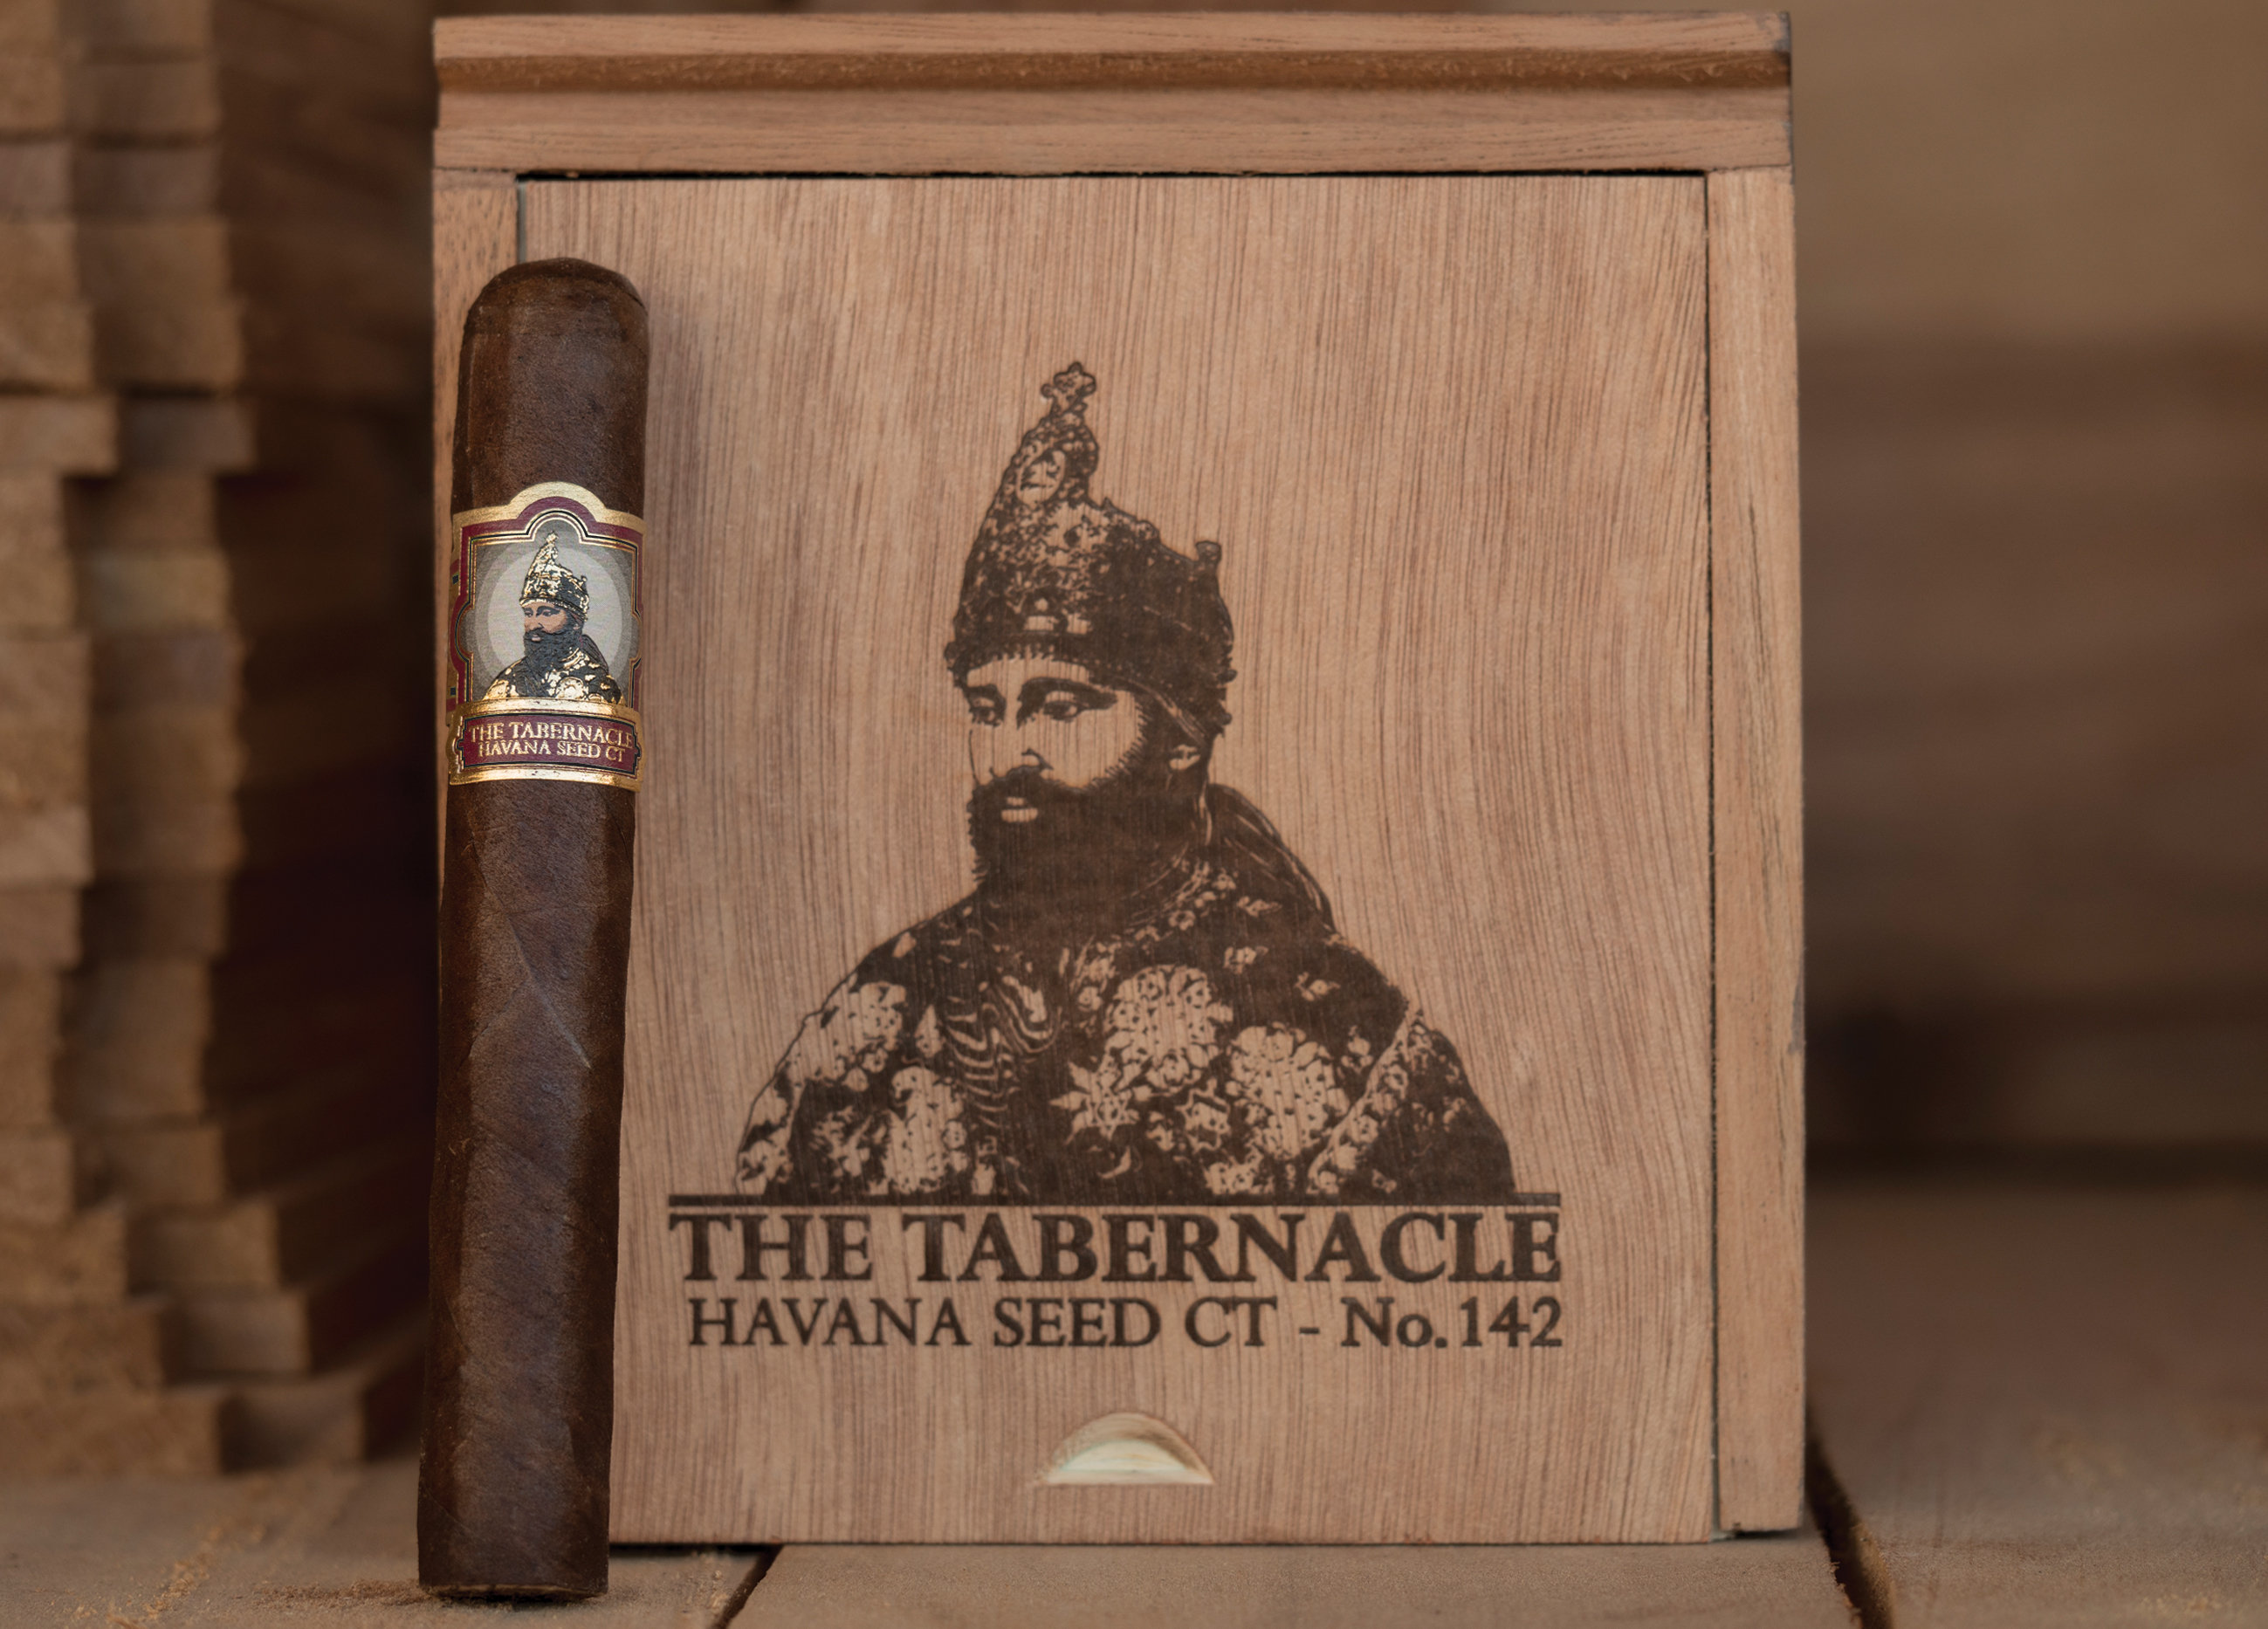 Foundation cigar company Tabernacle Havana Seed CT #142